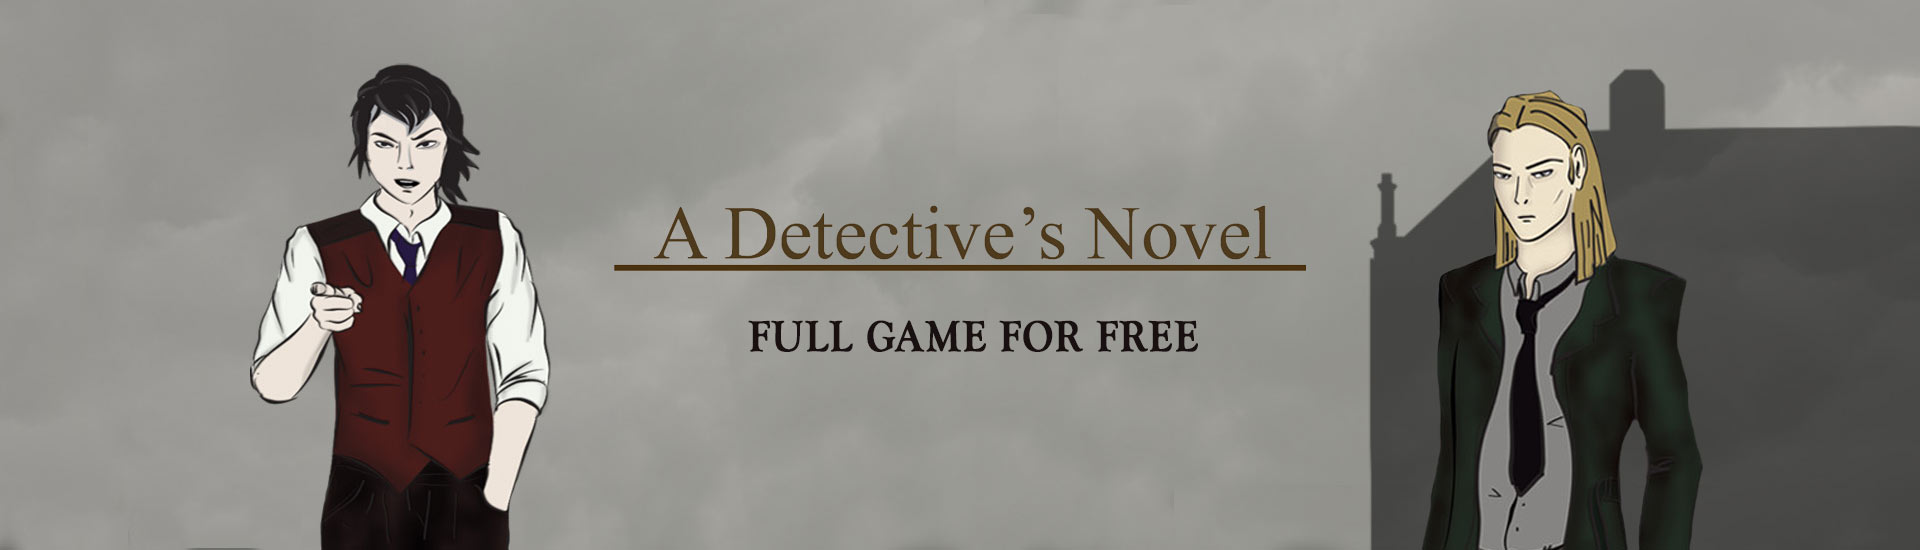 A Detective's Novel cover